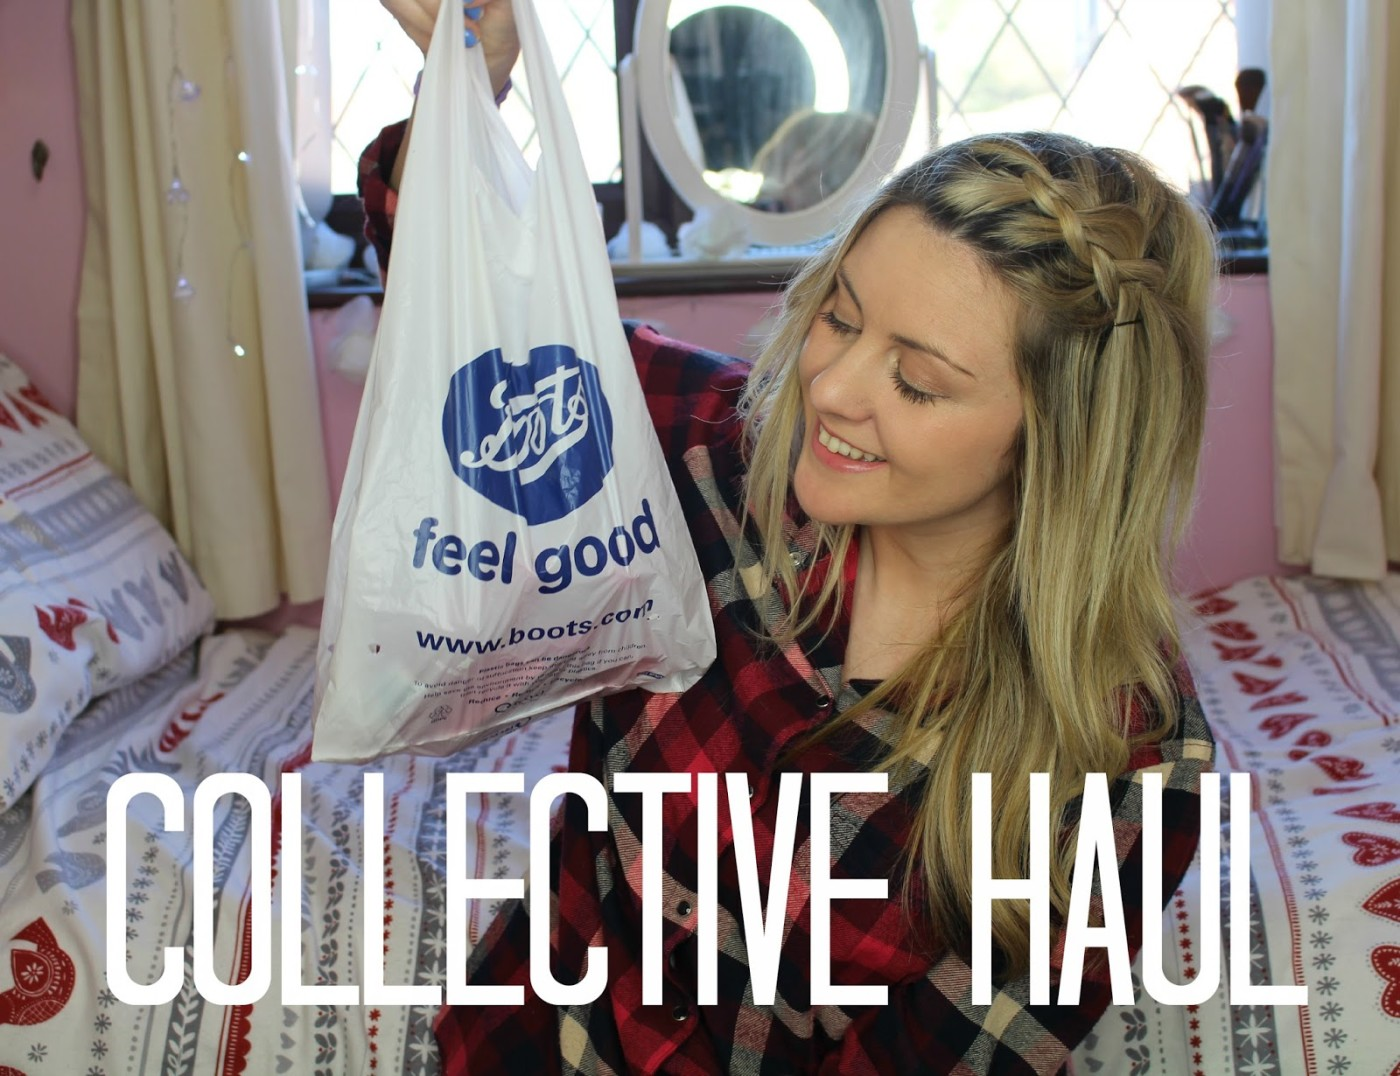 collective haul, through chelsea's eyes, boots haul, lush haul, clothing haul,